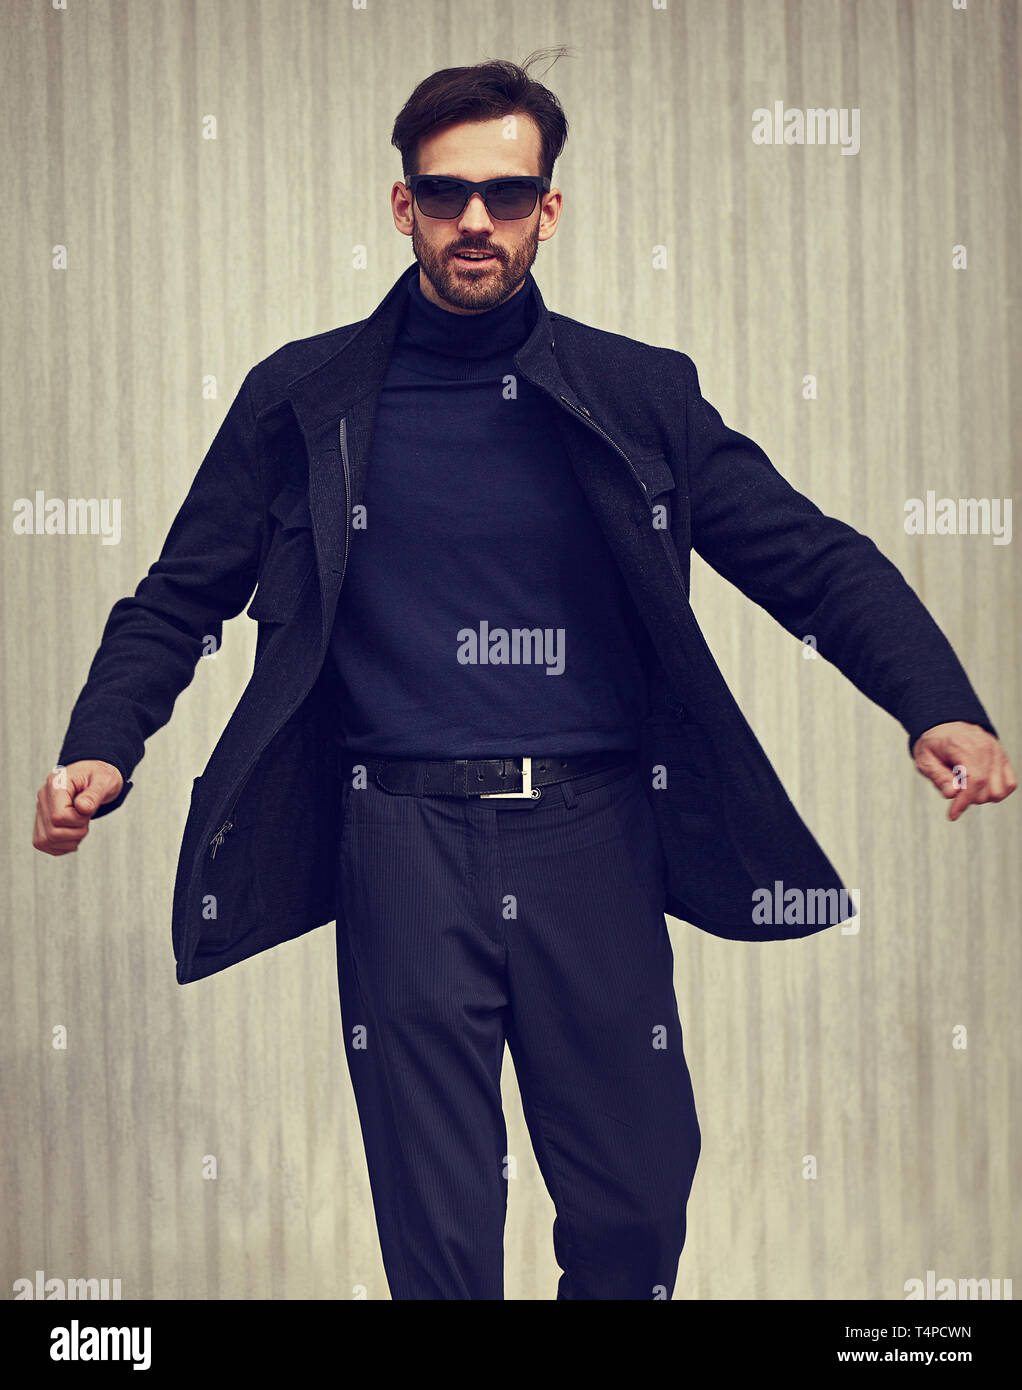 Fashion beard style business handsome male model in fashion sunglasses with serious concentrated look whirling and moving in style clothing on wall ou - Stock Image